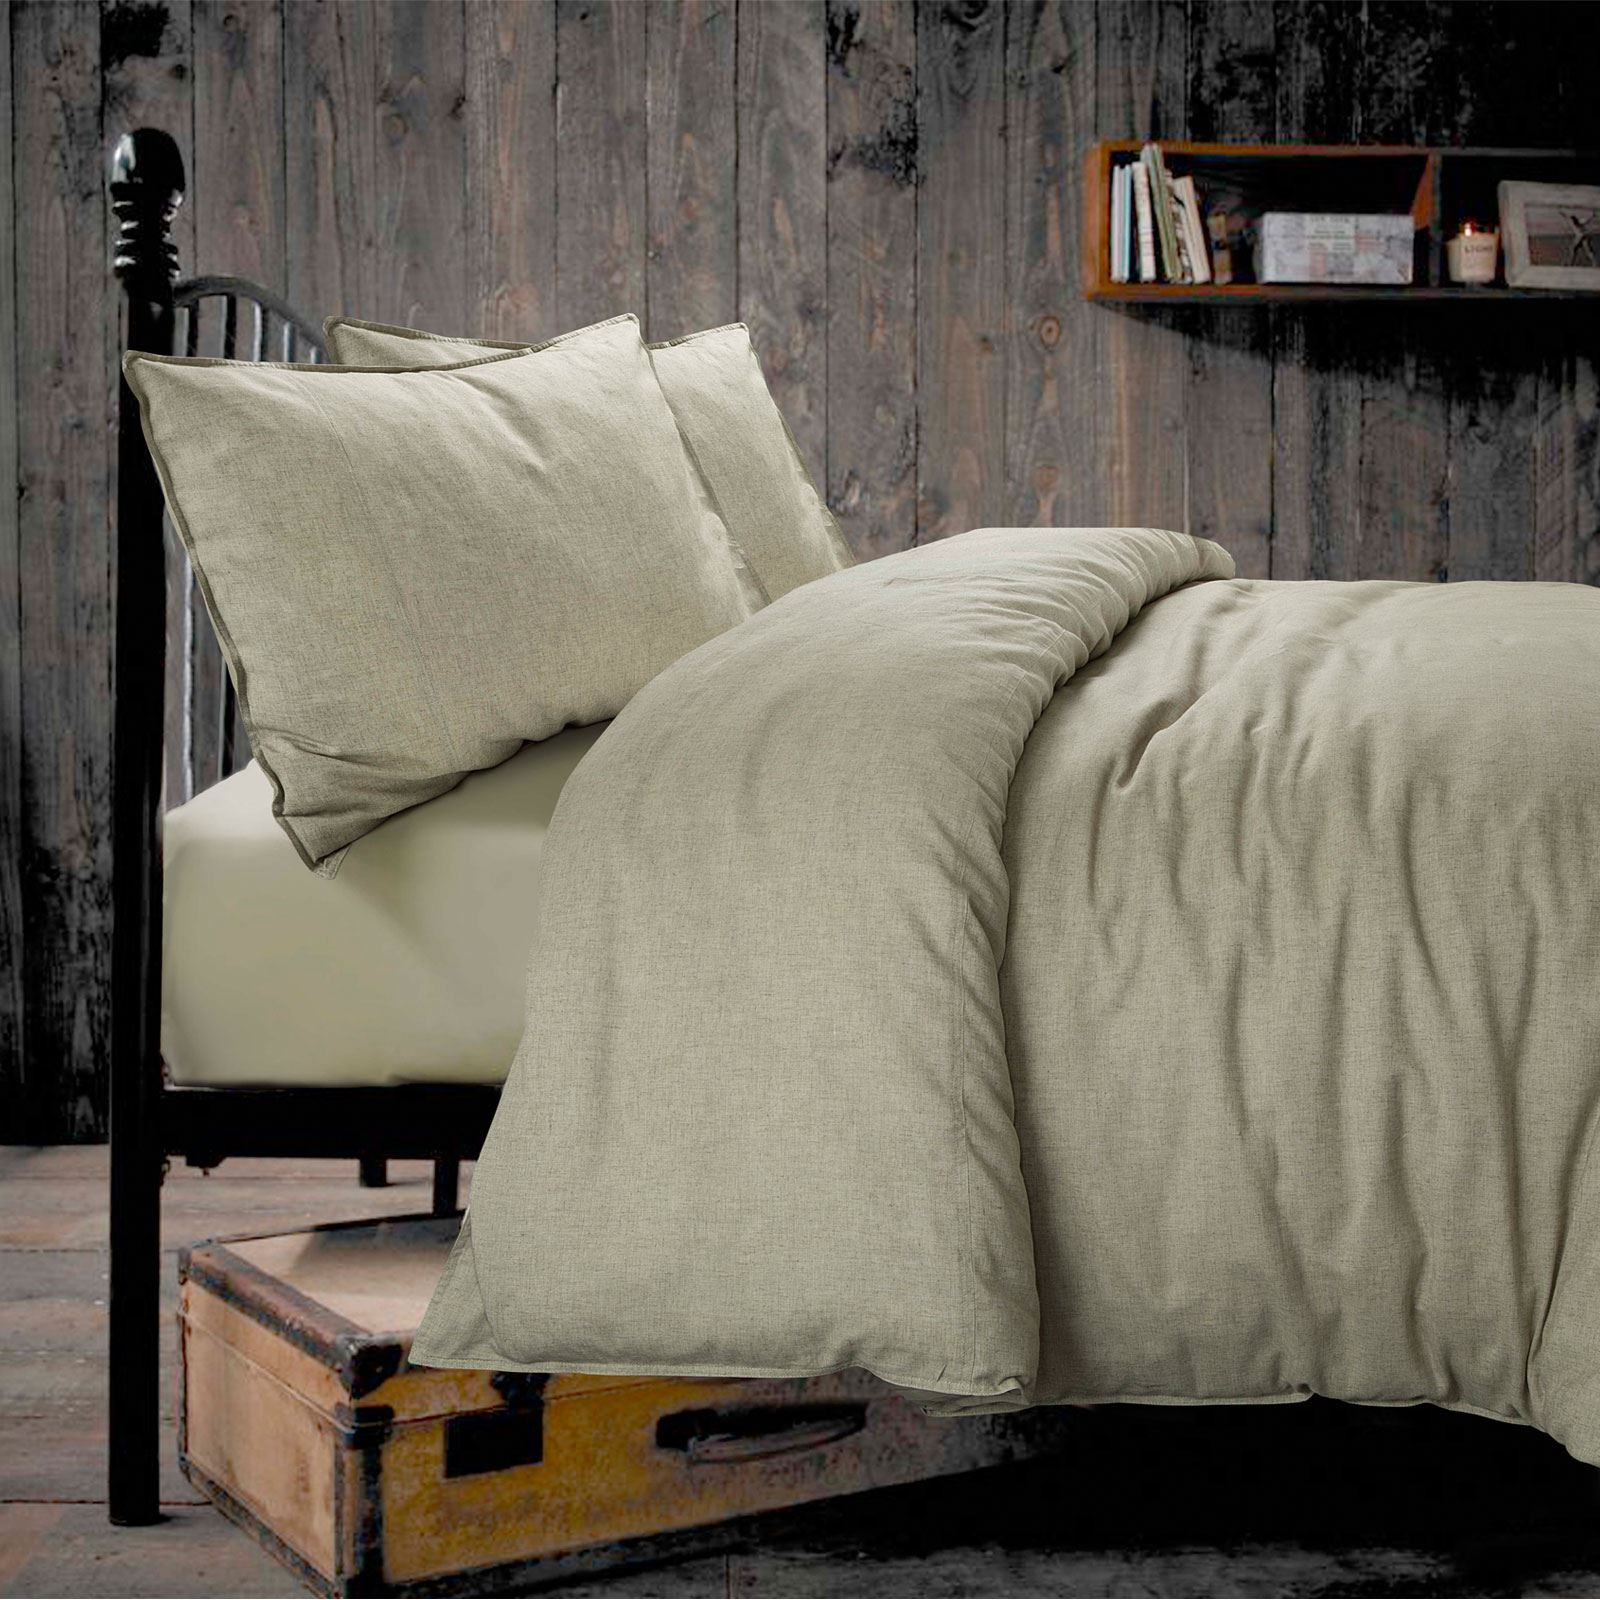 100-coton-lin-naturel-pur-Housse-Couette-Ensemble-De-Literie-double-King miniature 24